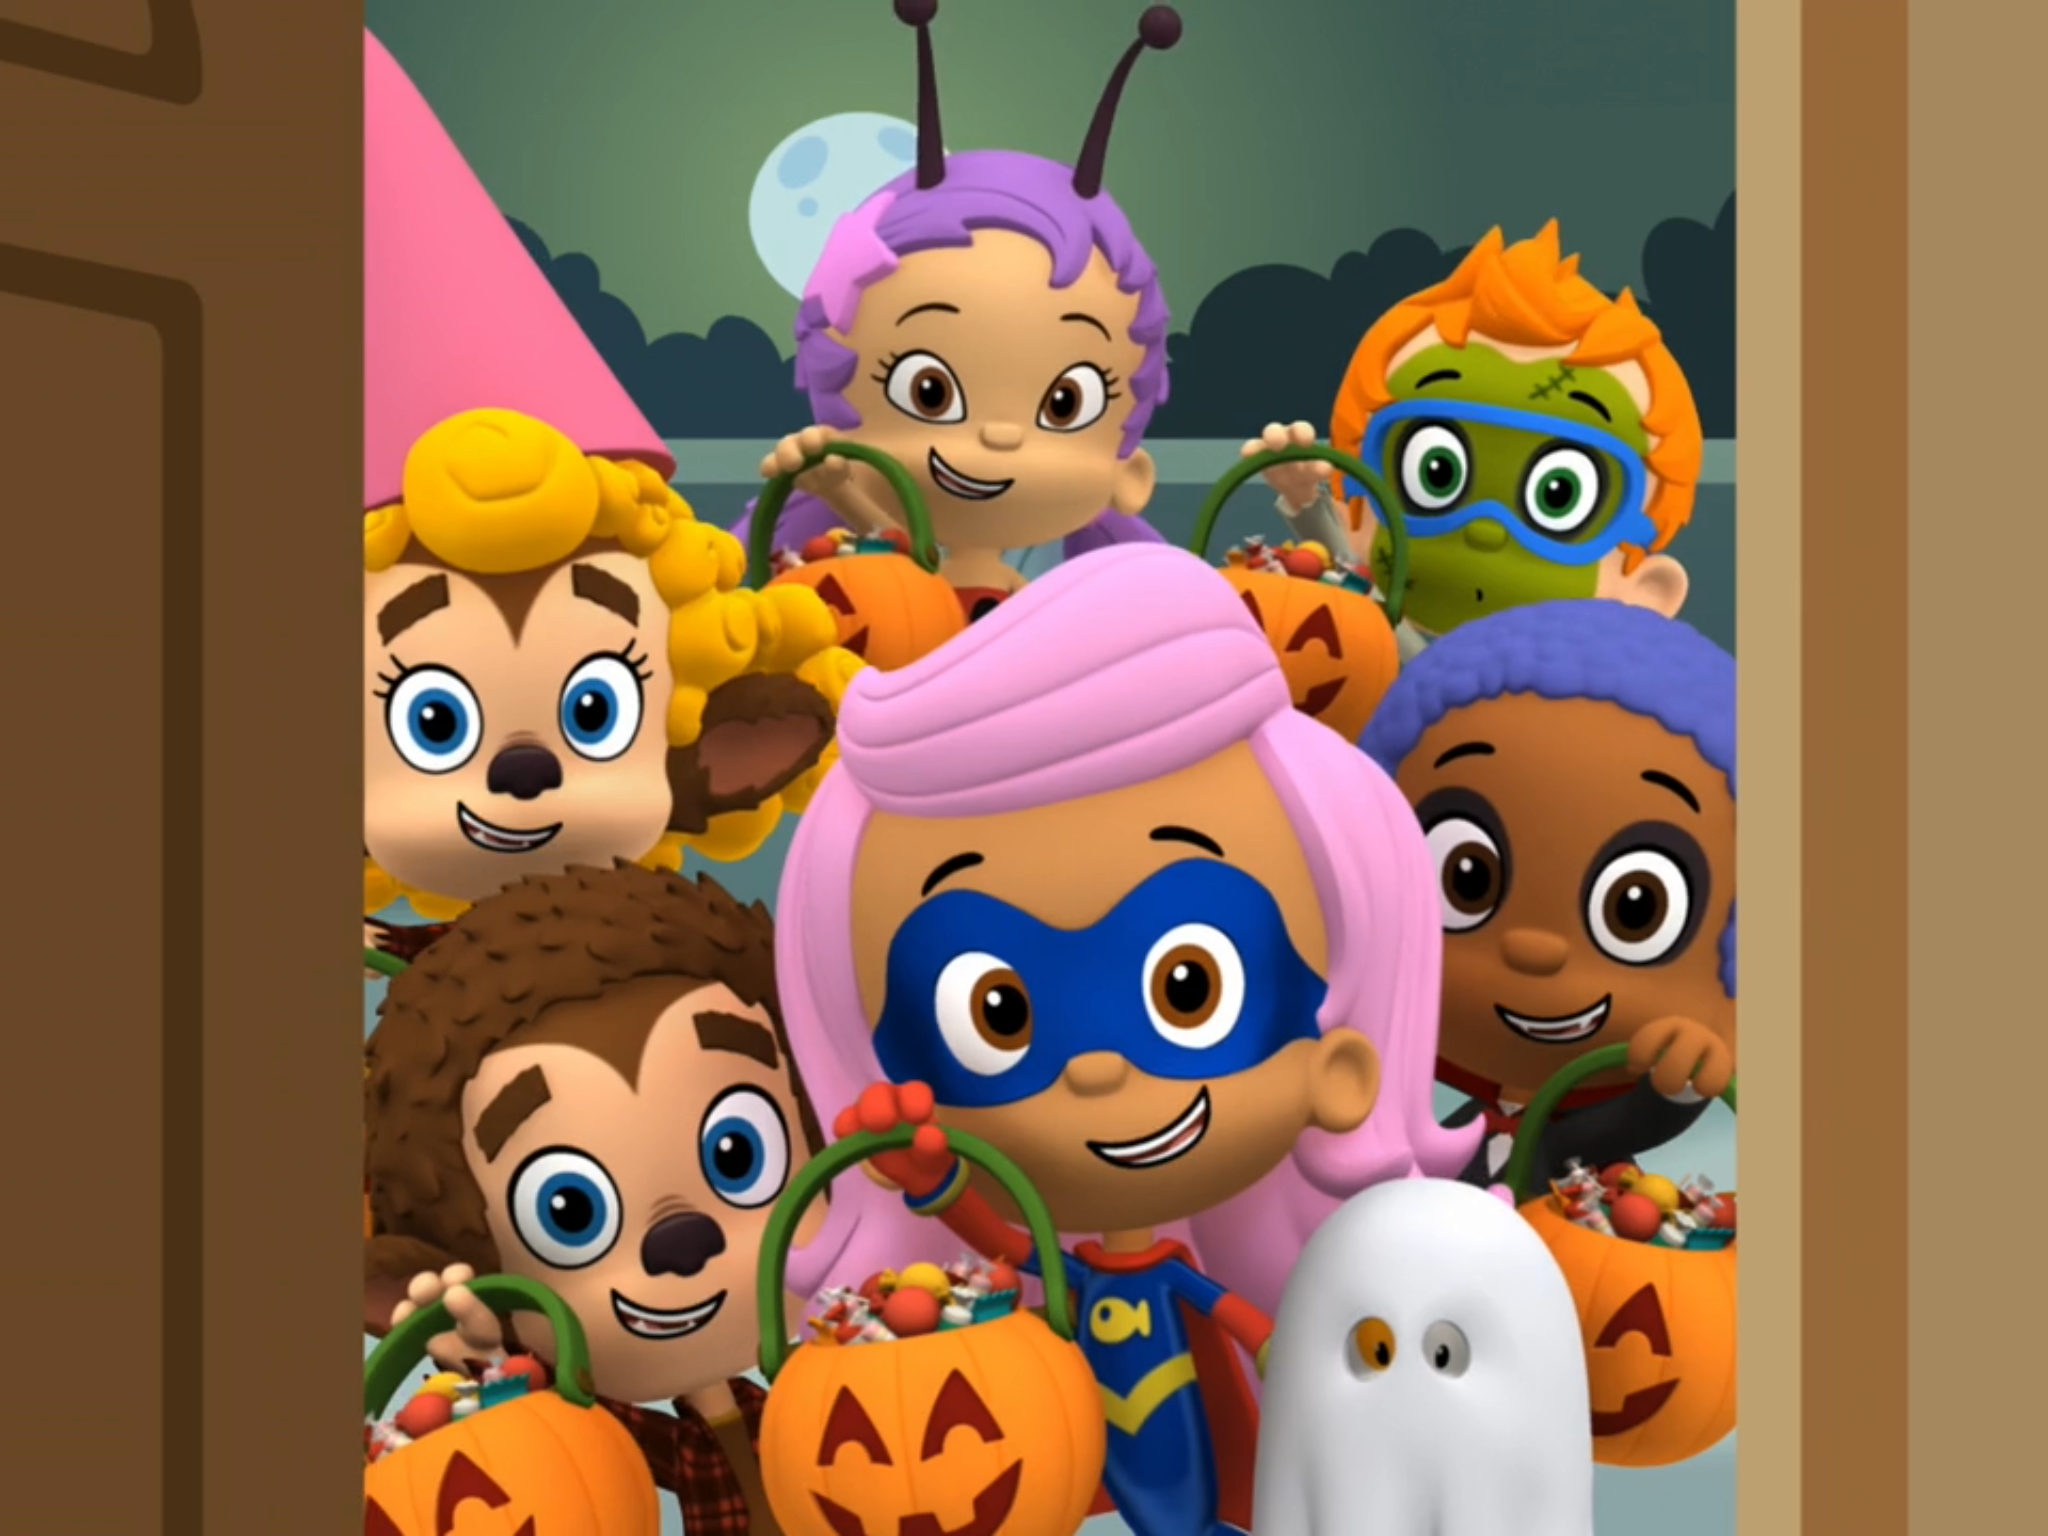 Happy Halloween To The Bubble Guppies To Have A Spooky Fun